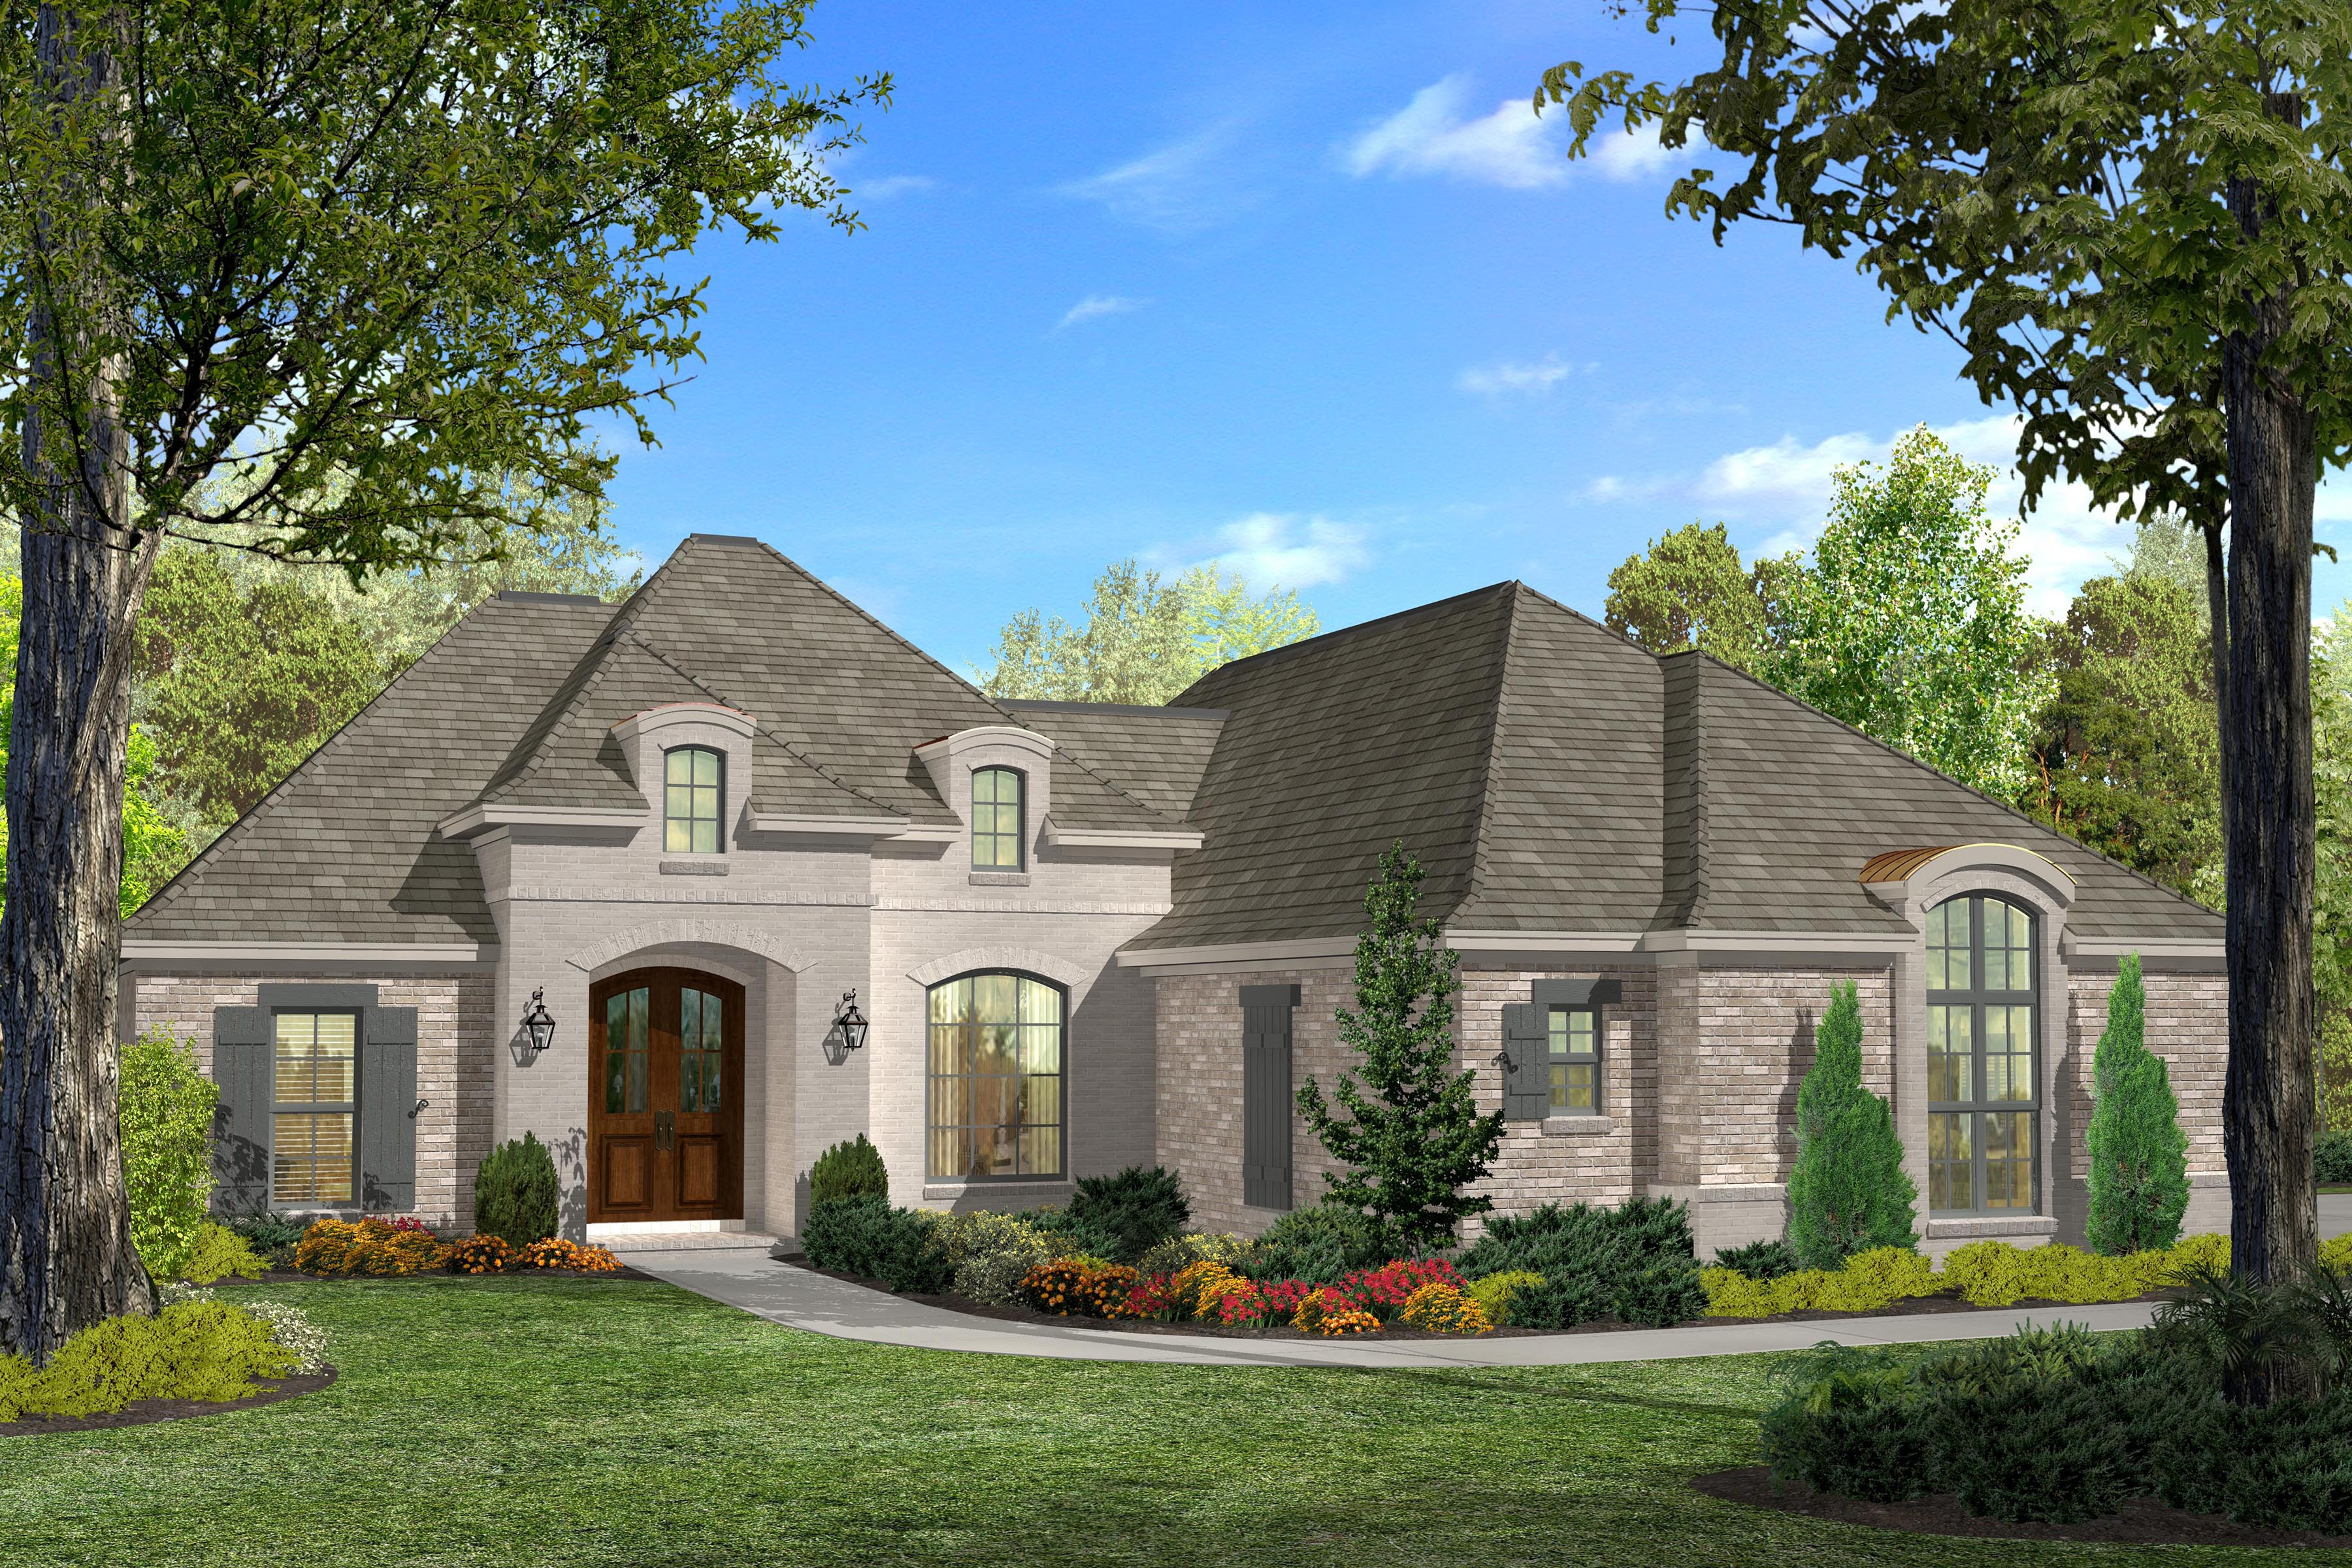 Acadian House Plan 1421124: 3 Bedrm, 1937 Sq Ft Home  ThePlanCollection